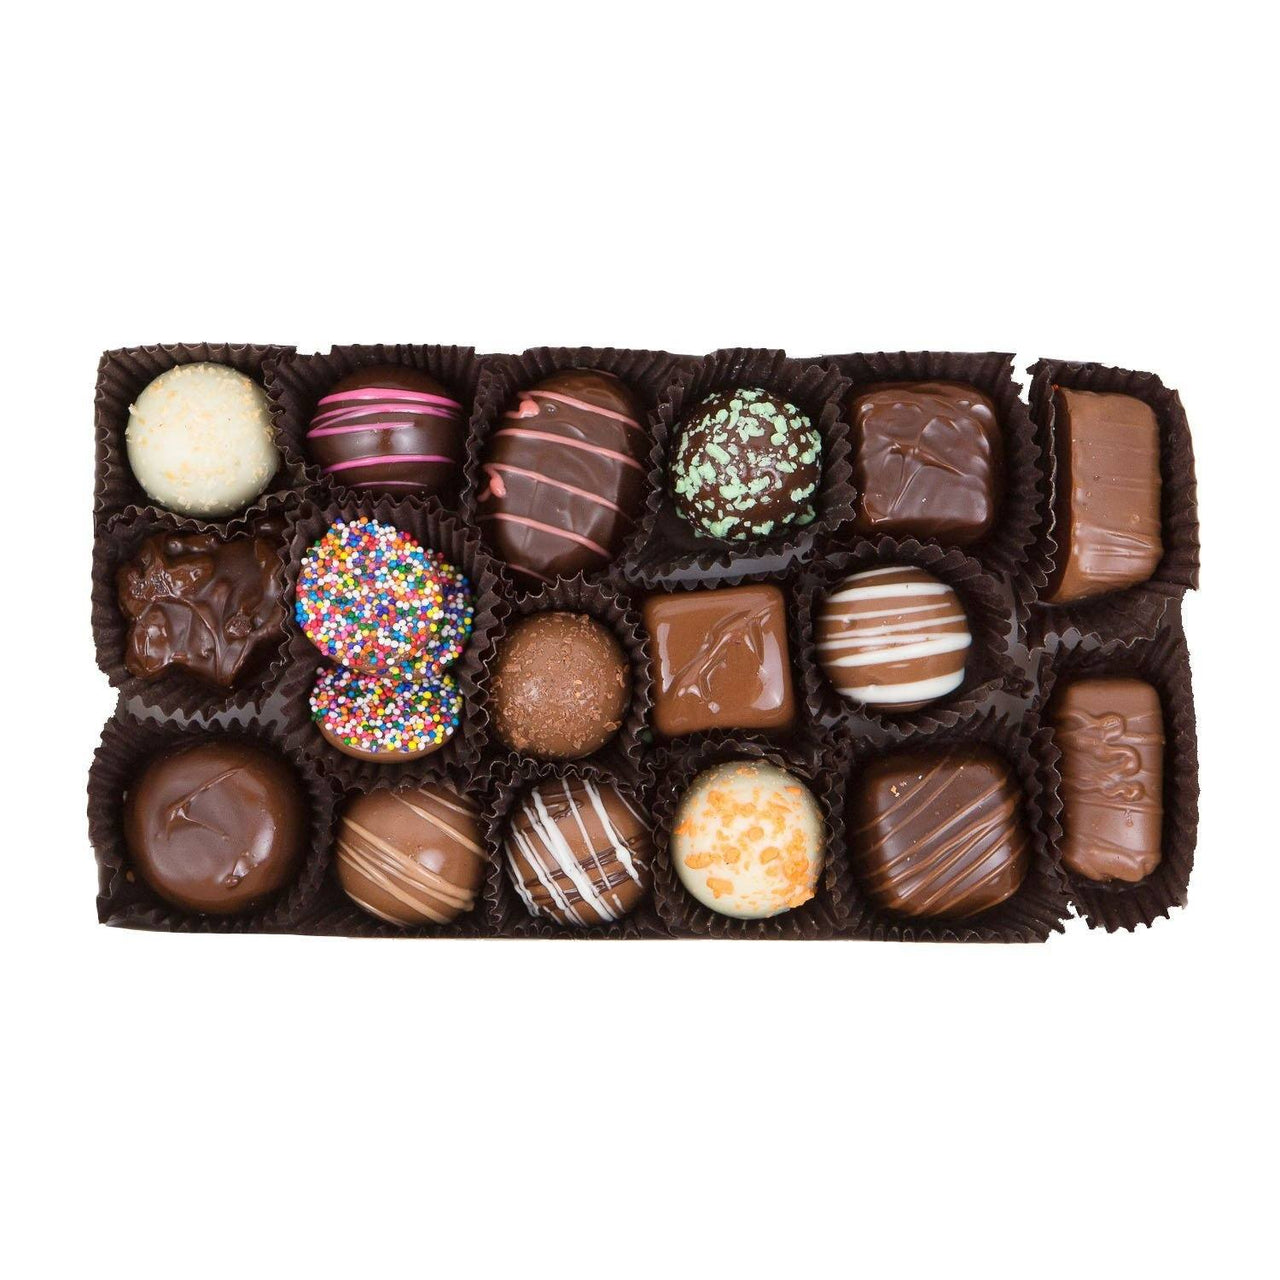 Family Gifts - Chocolate Assortment Gift Box - Jackie's Chocolate (4336494805107)